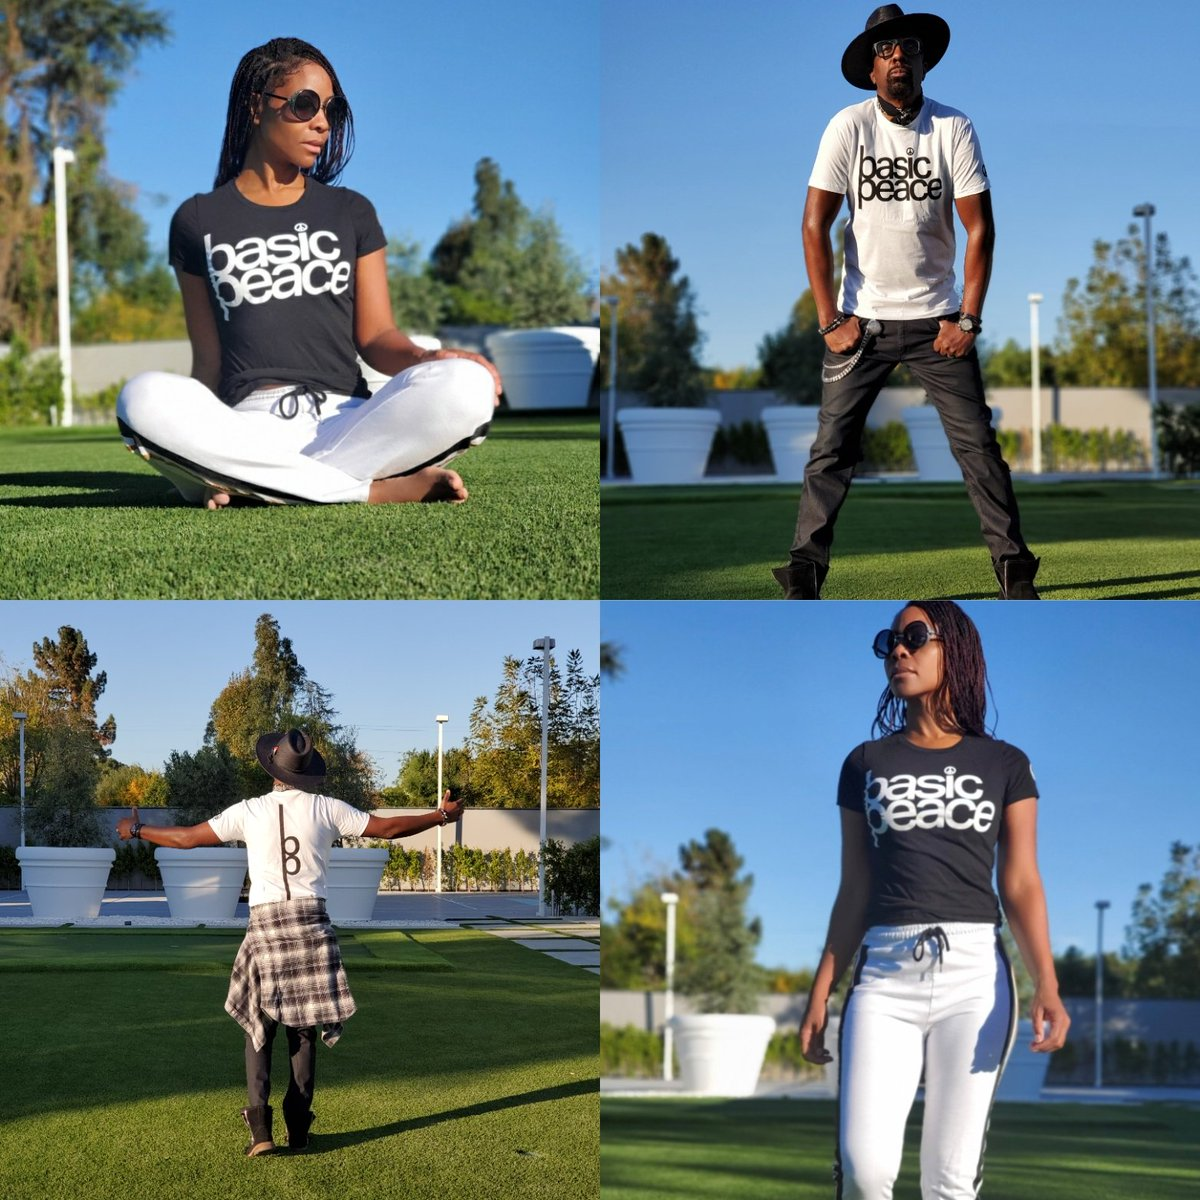 It's a Lifestyle Brand! Get Right! #apparel #basic #peace #tees